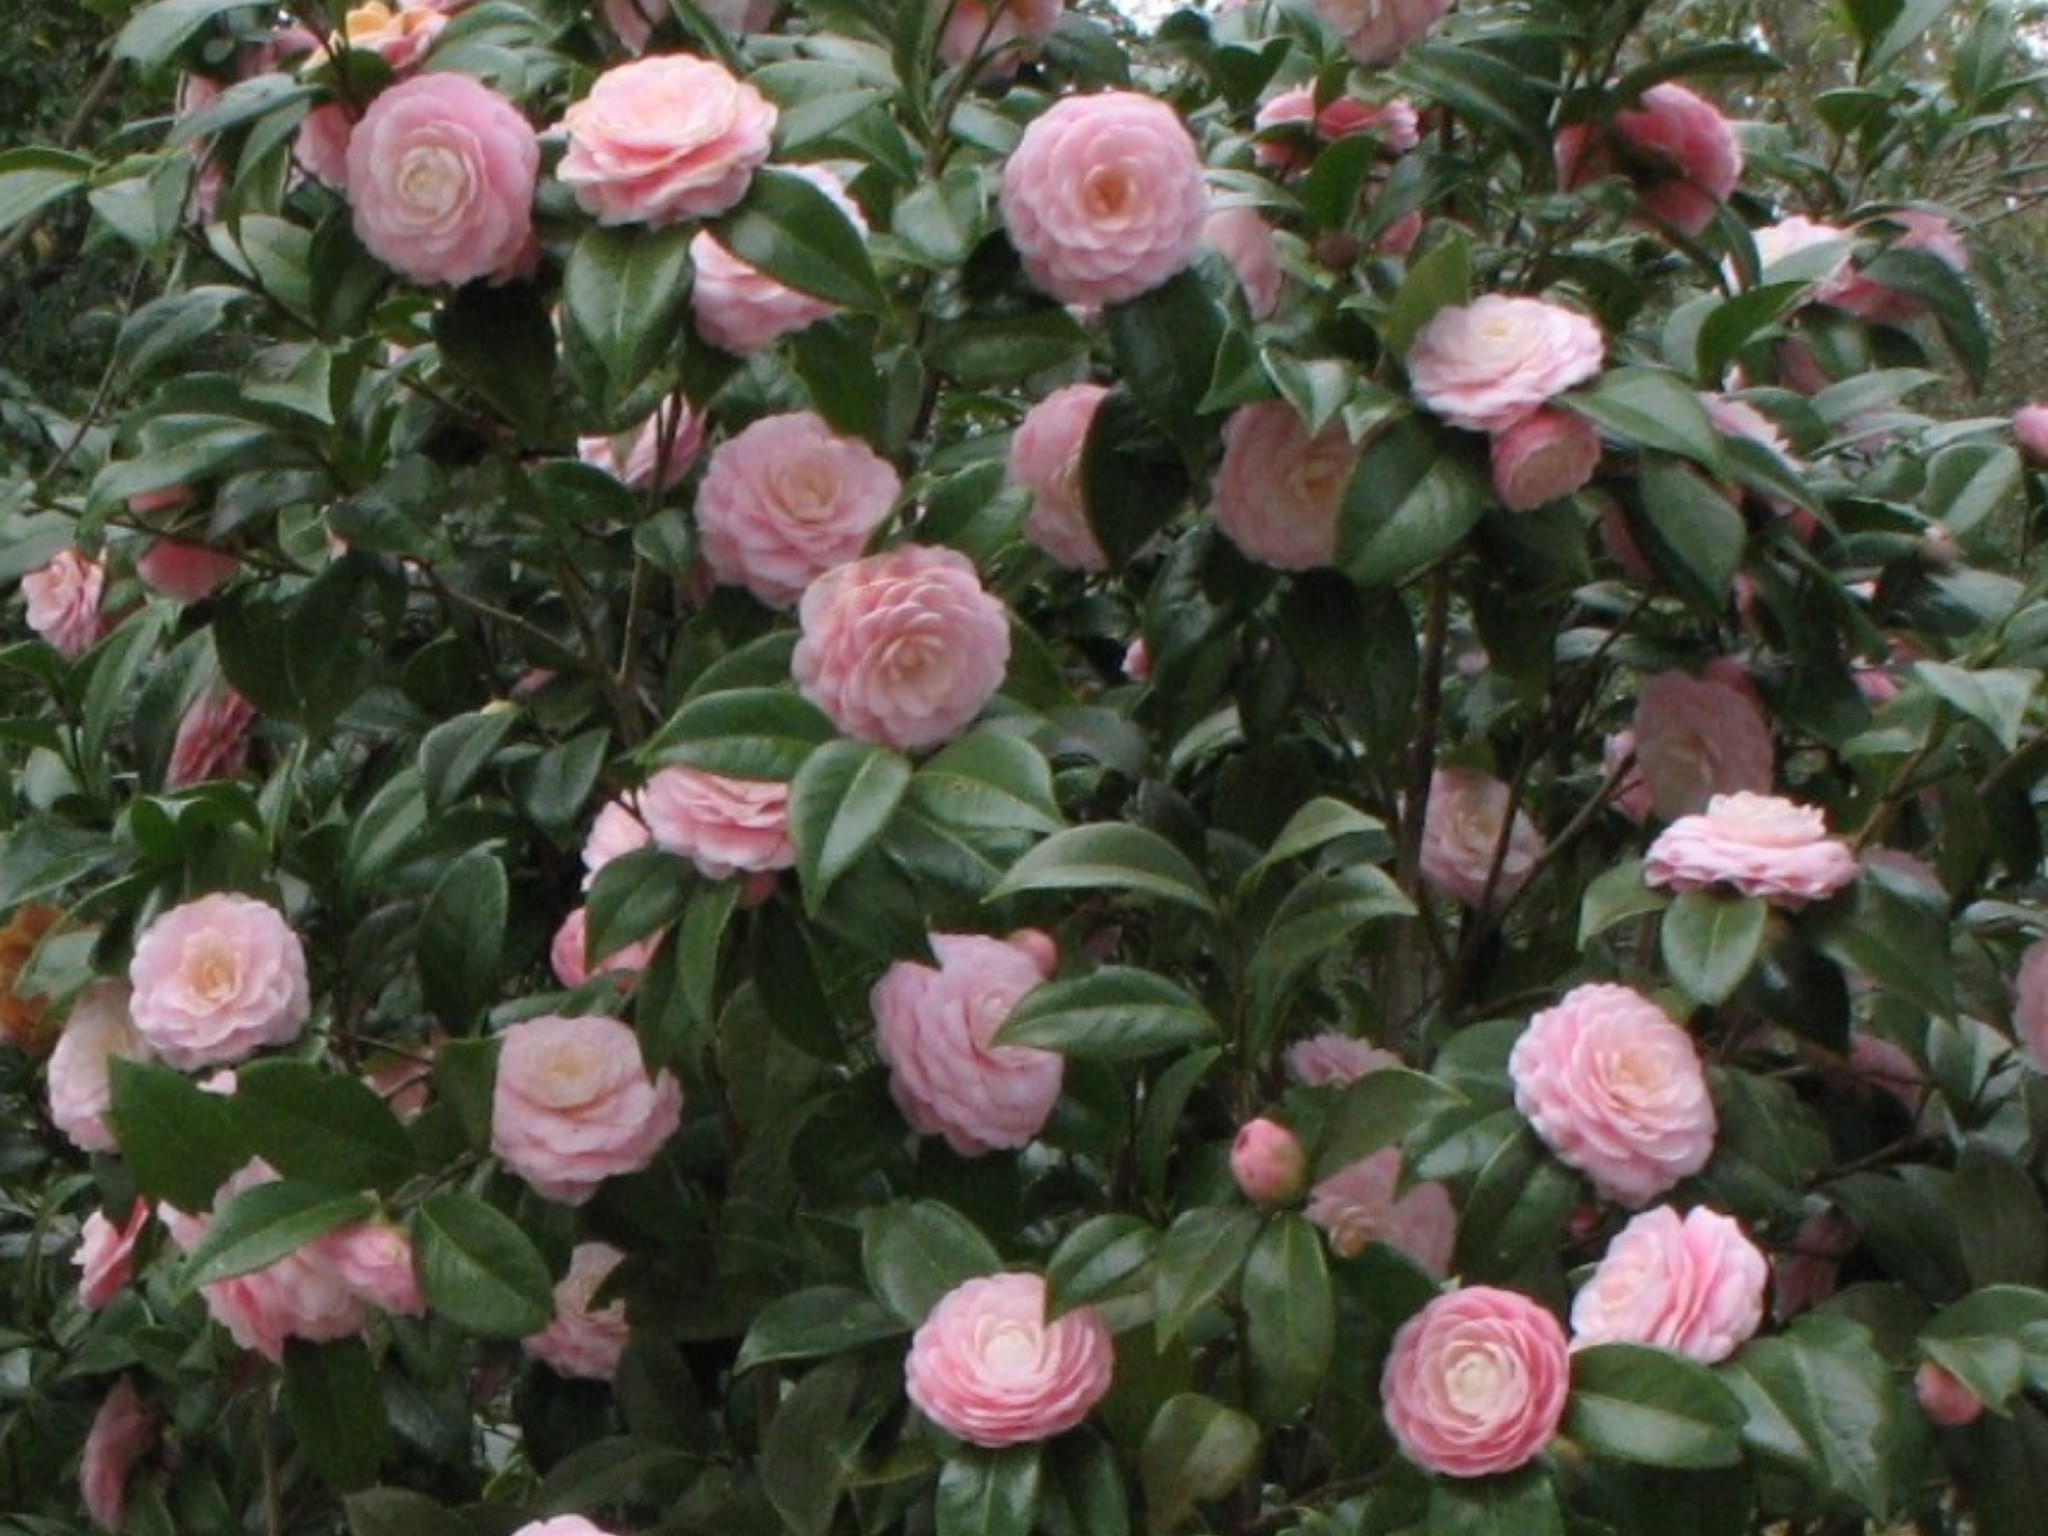 Camellia japonica 'Pink Perfection'  / Camellia japonica 'Pink Perfection'